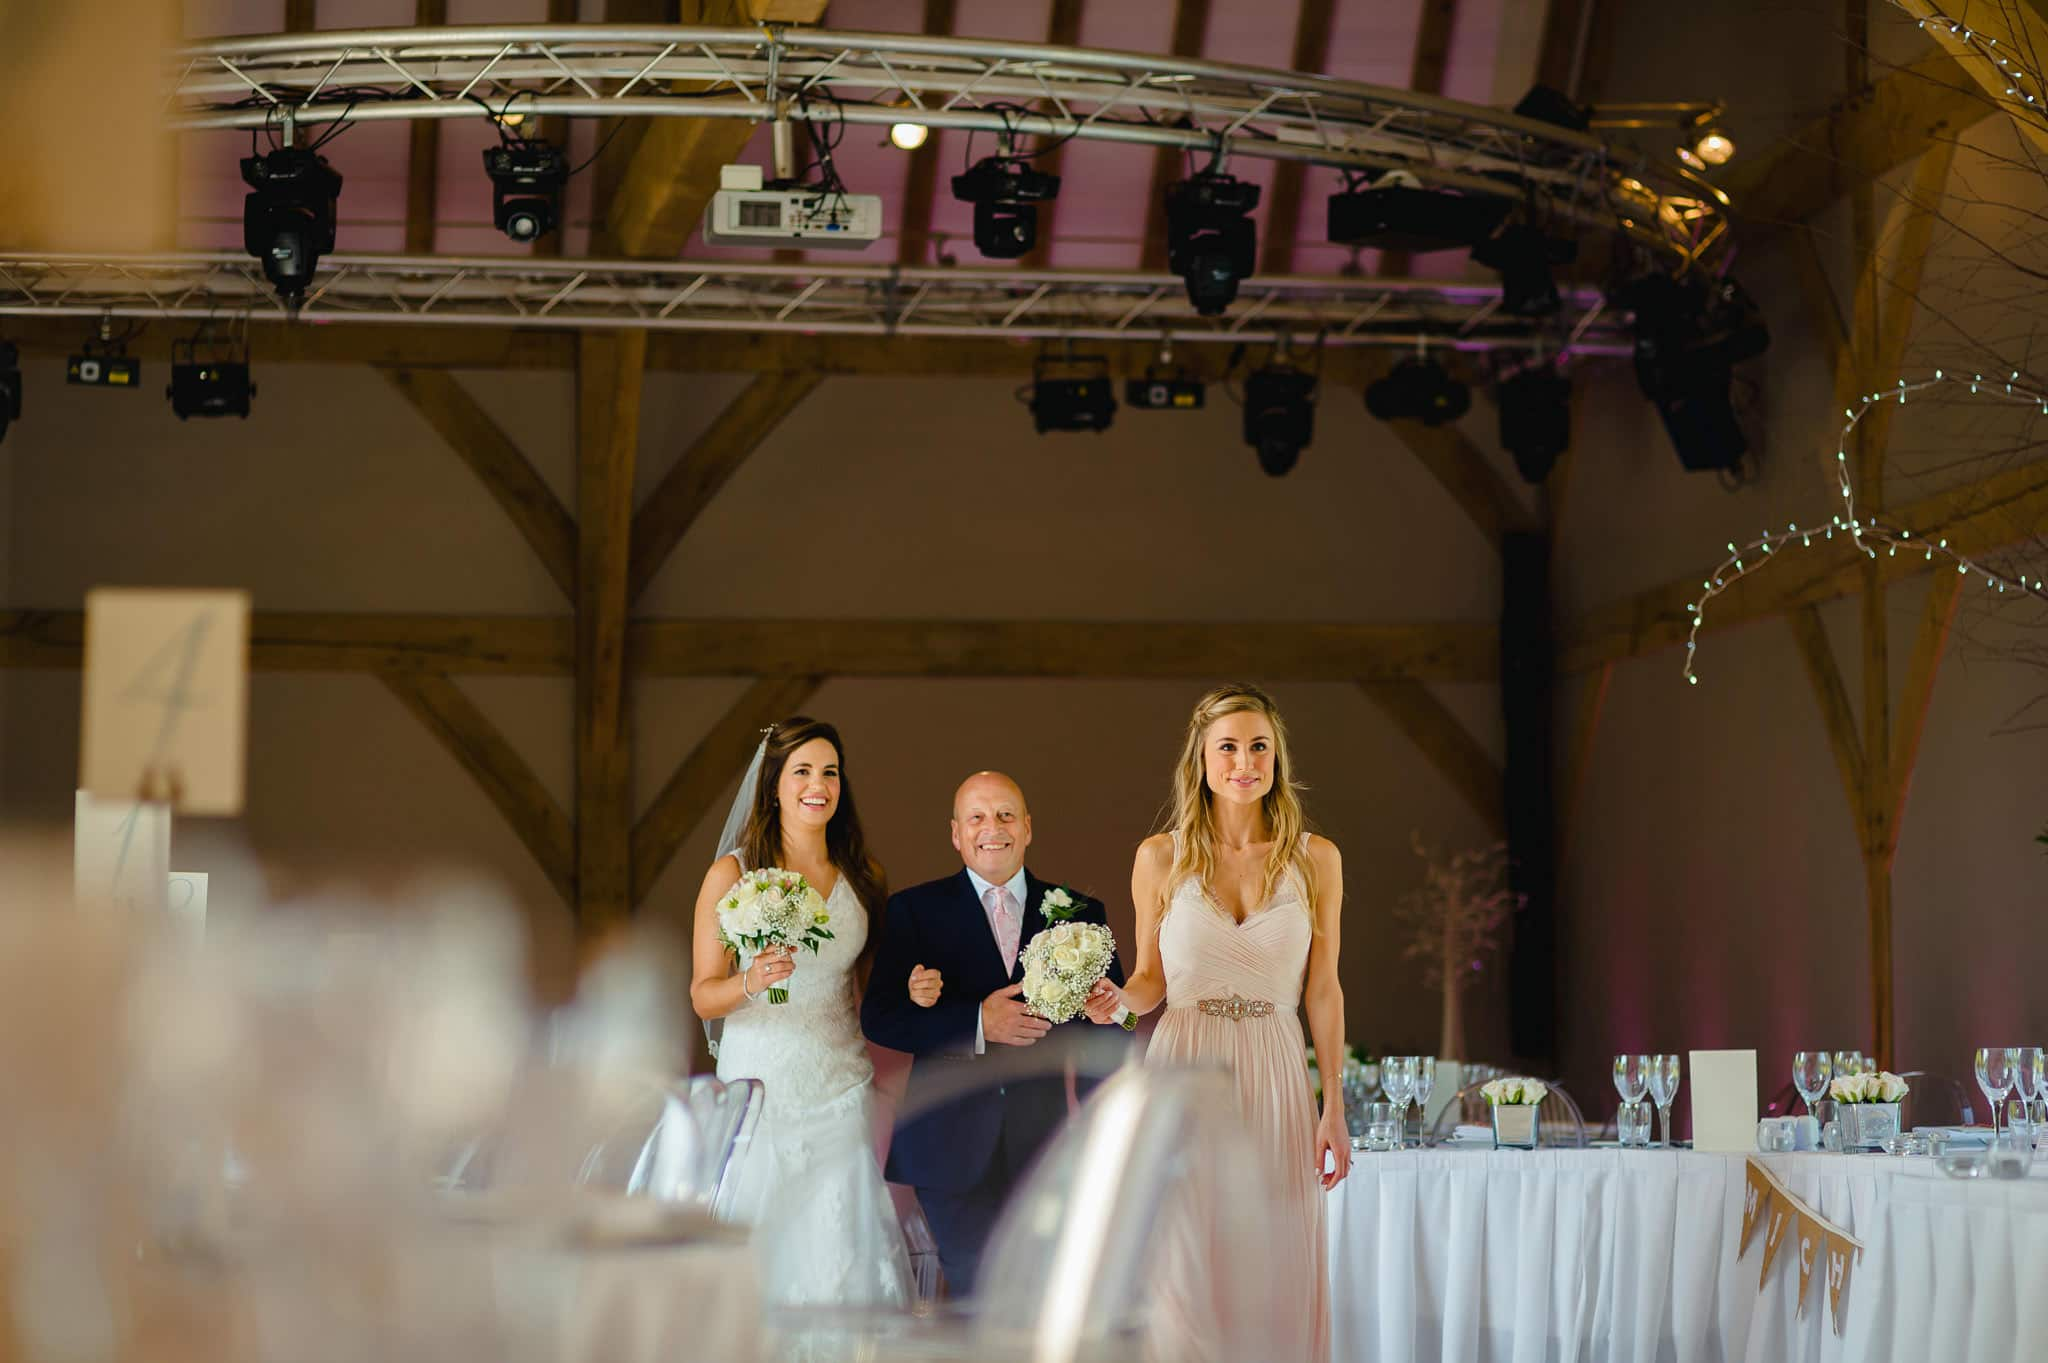 Wedding at Redhouse Barn in Stoke Prior, Worcestershire 58